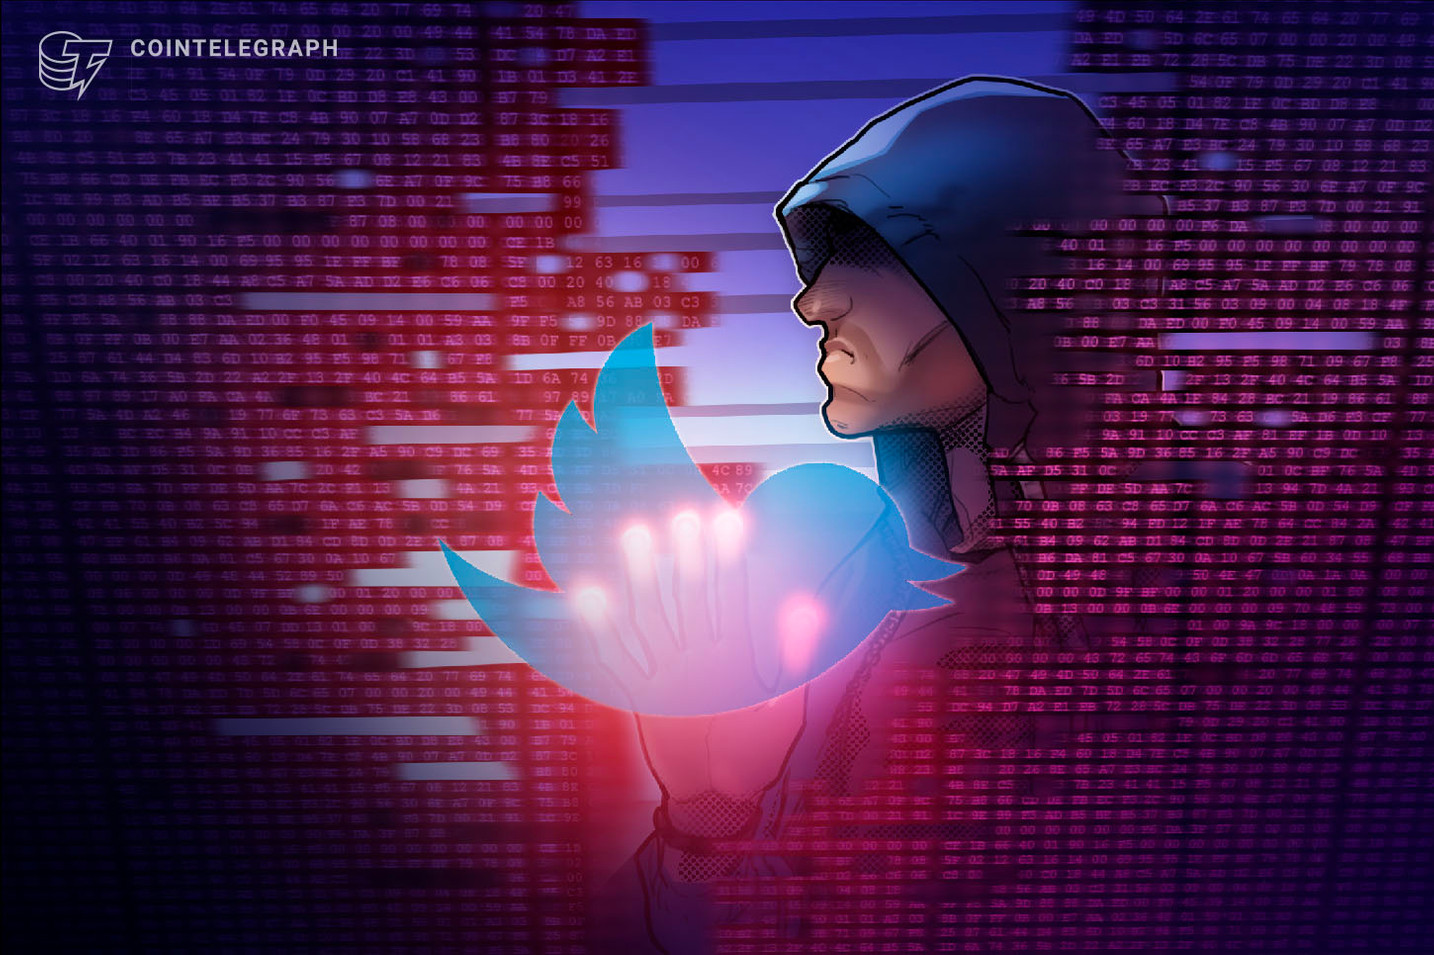 Alleged second teen mastermind behind Twitter's 'Bitcoin giveaway' hack